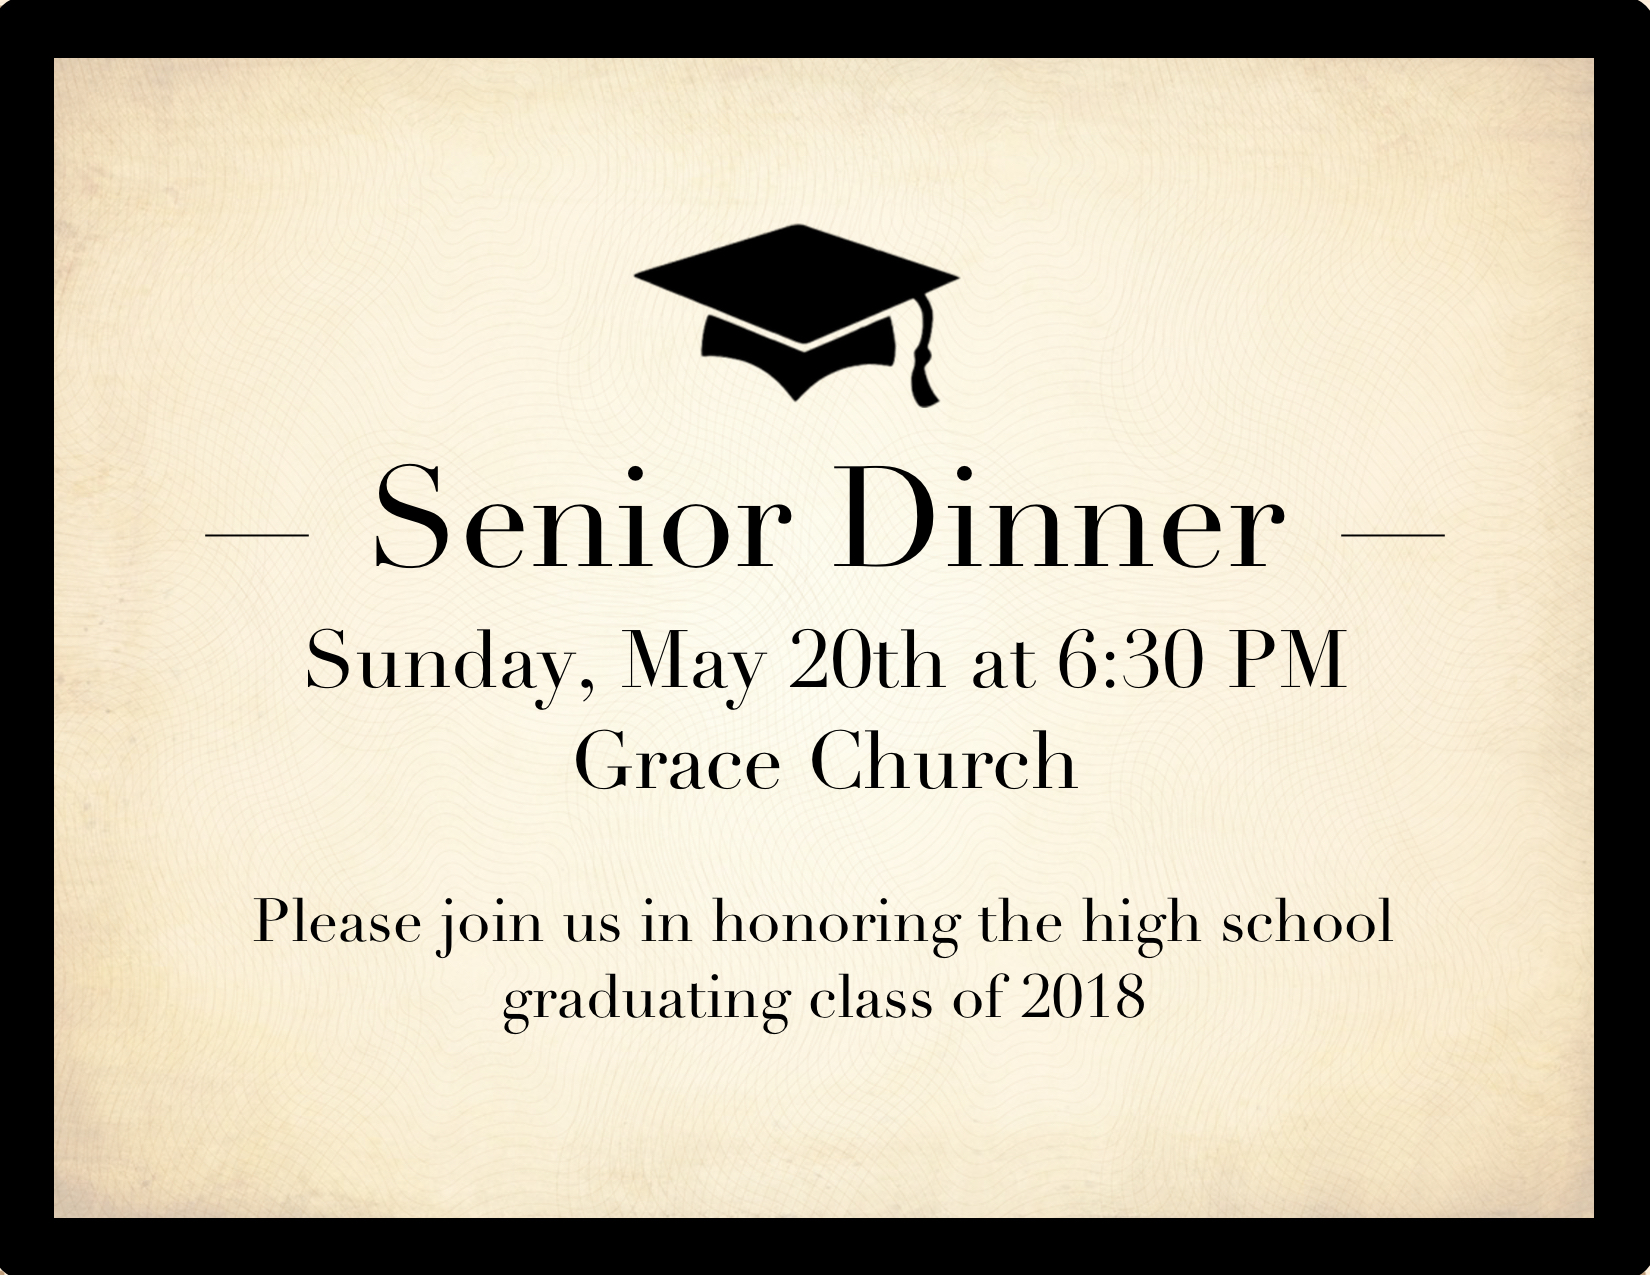 Sr. dinner graphic